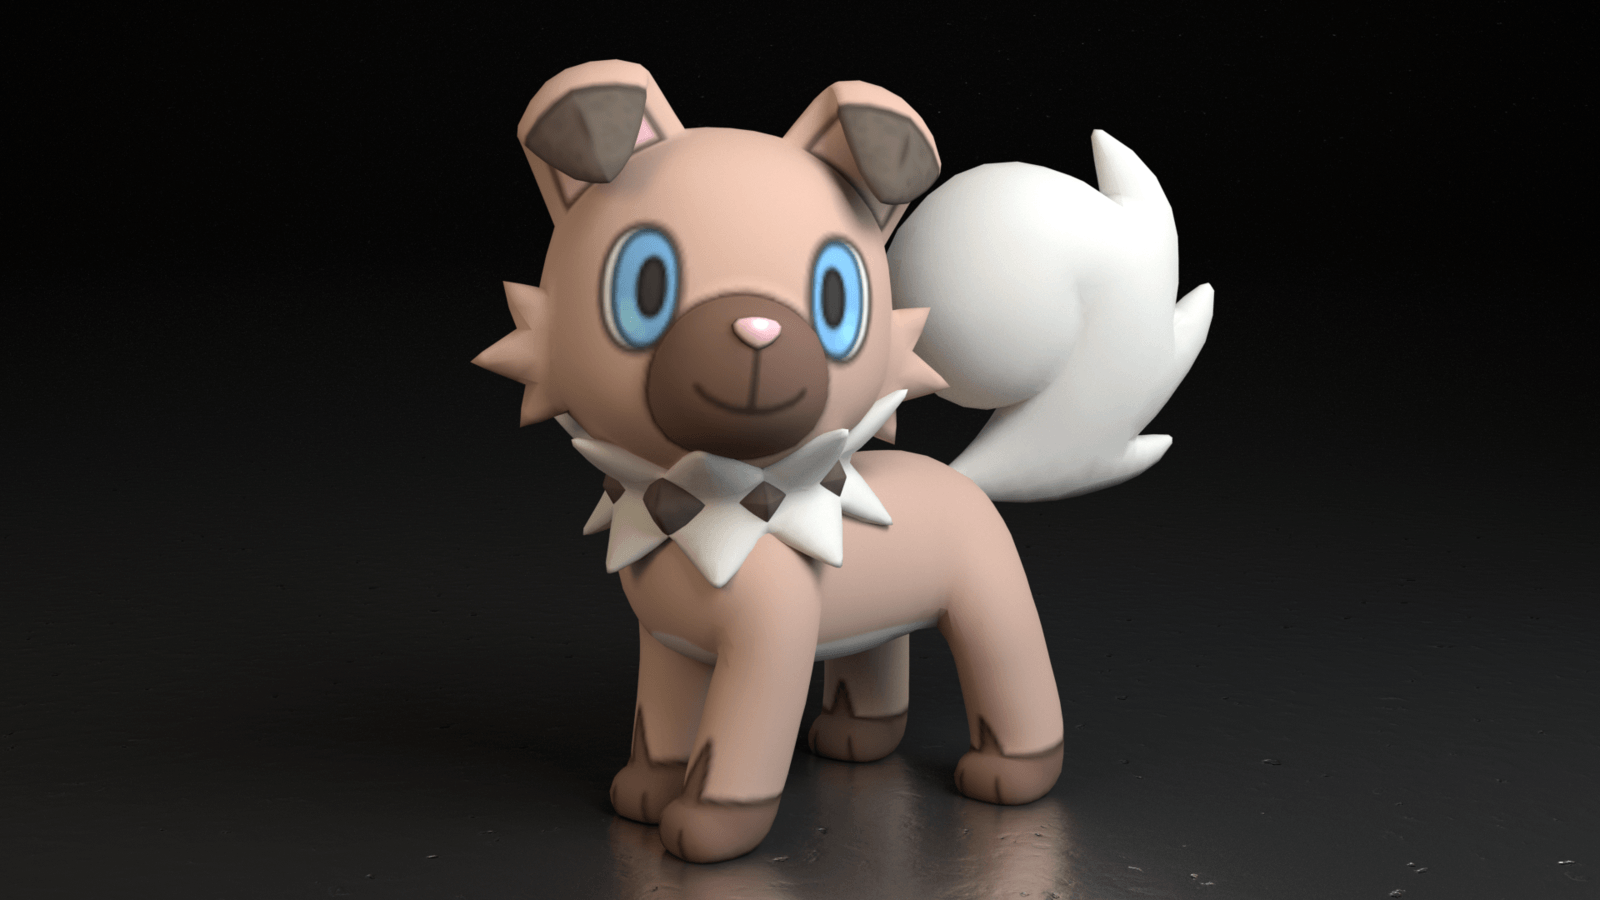 744. Rockruff by TheAdorableOshawott on DeviantArt